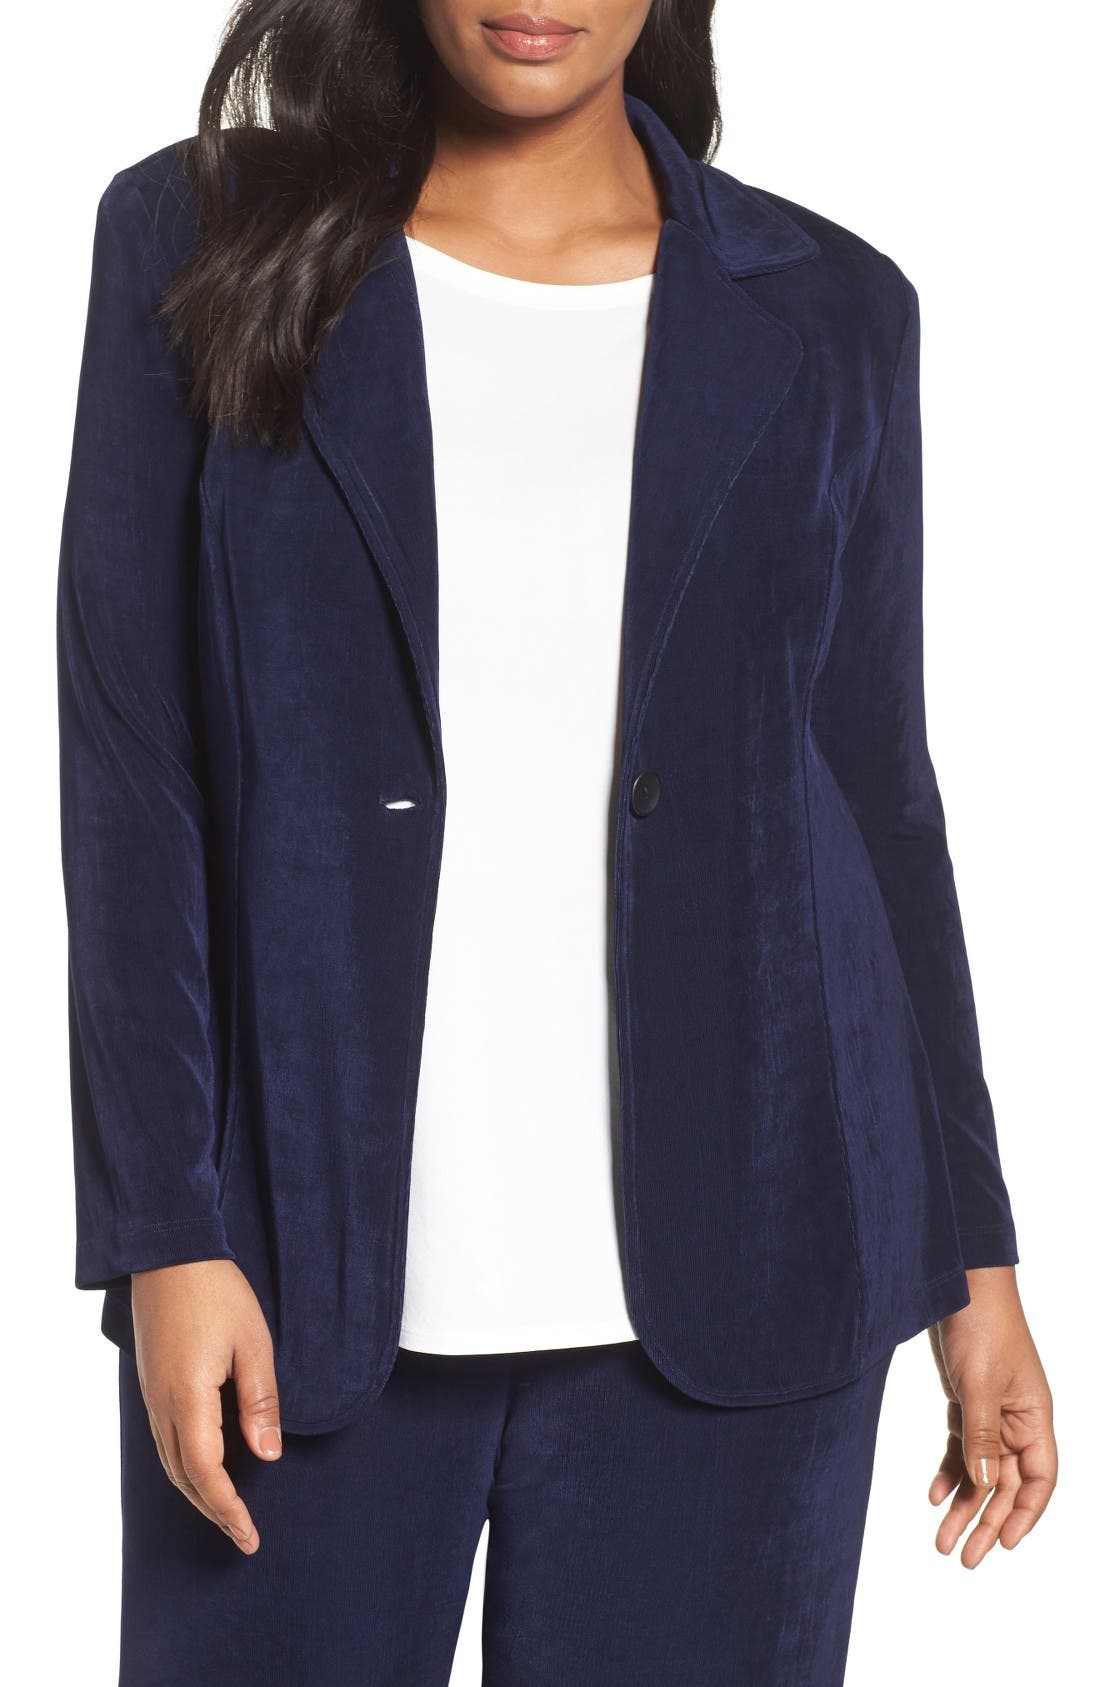 One-Button Stretch Knit Blazer,                             Main thumbnail 1, color,                             Navy